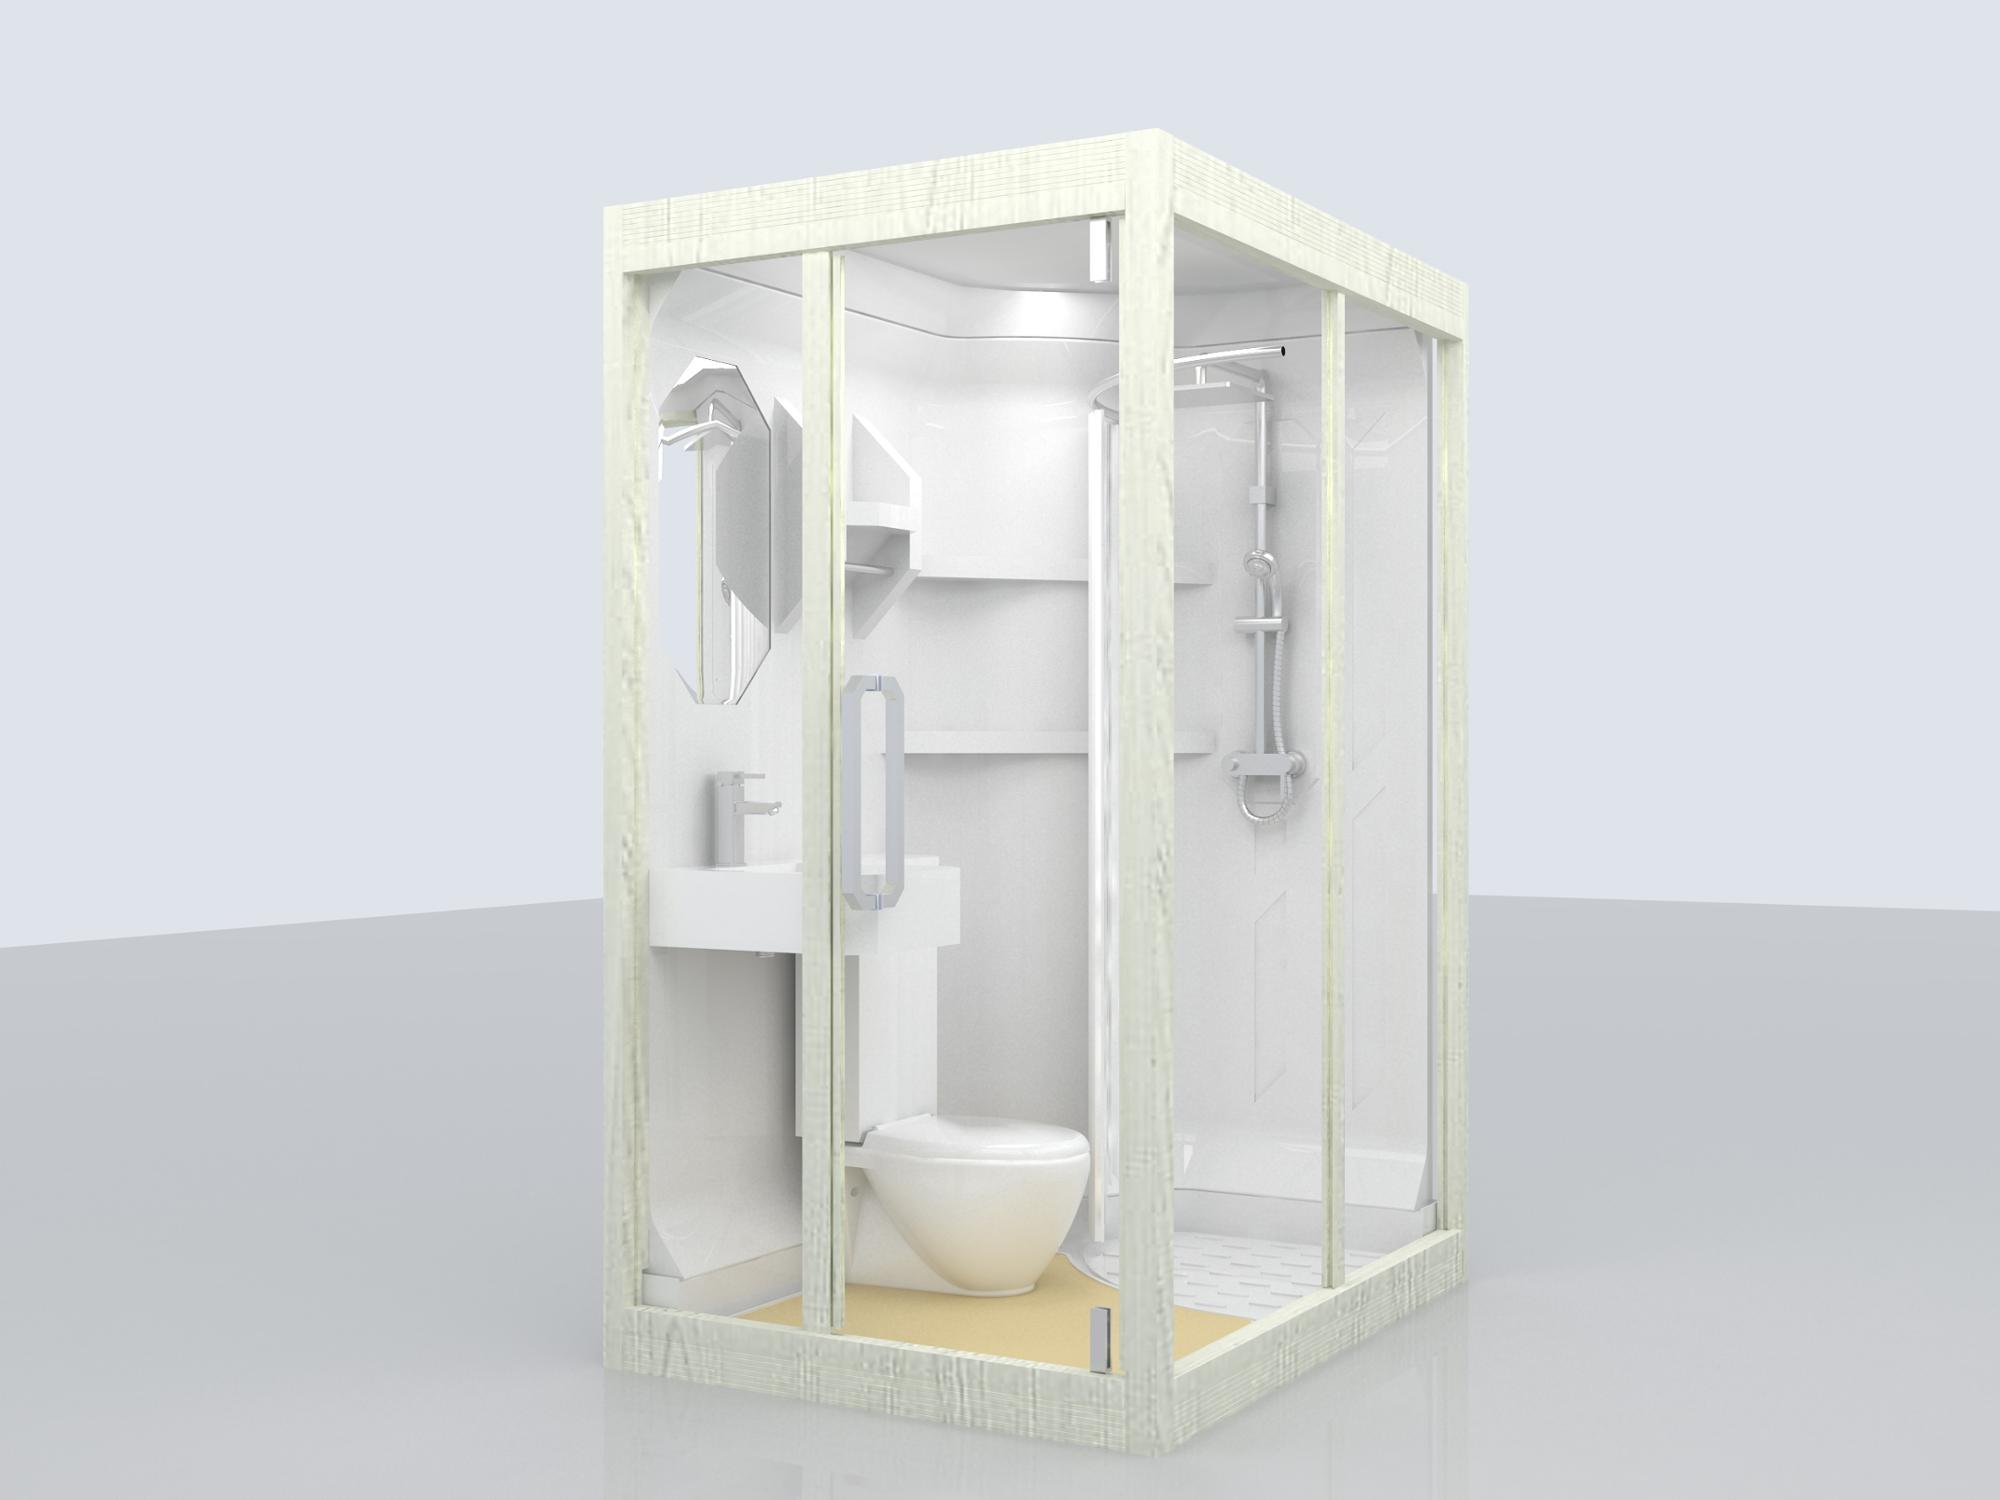 China Suppliers Prefab Shower And Toilet Modular Bathroom